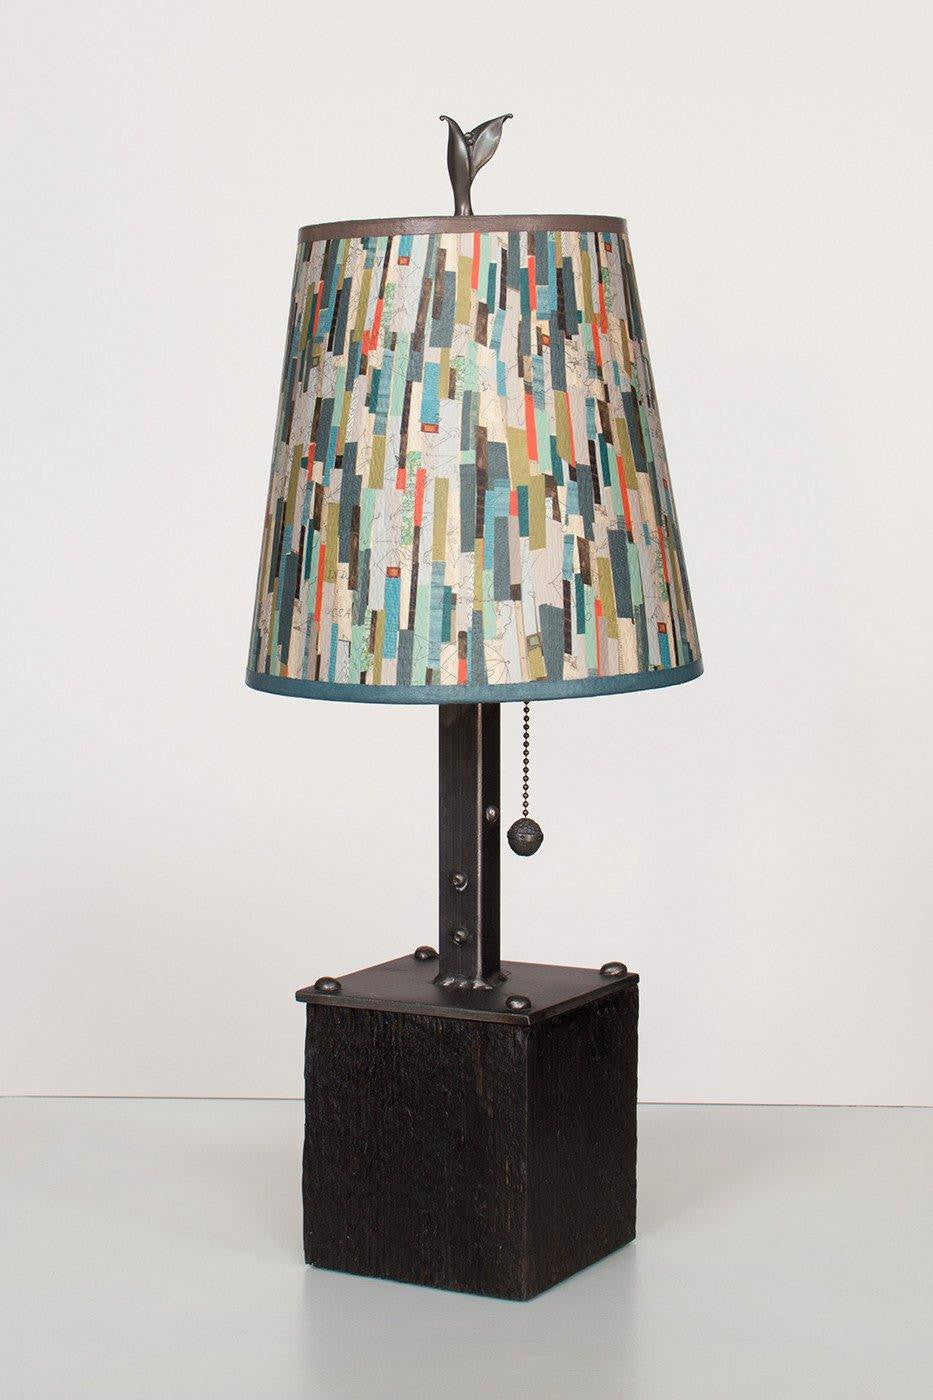 Steel Table Lamp on Reclaimed Wood with Small Drum Shade in Papers Lit